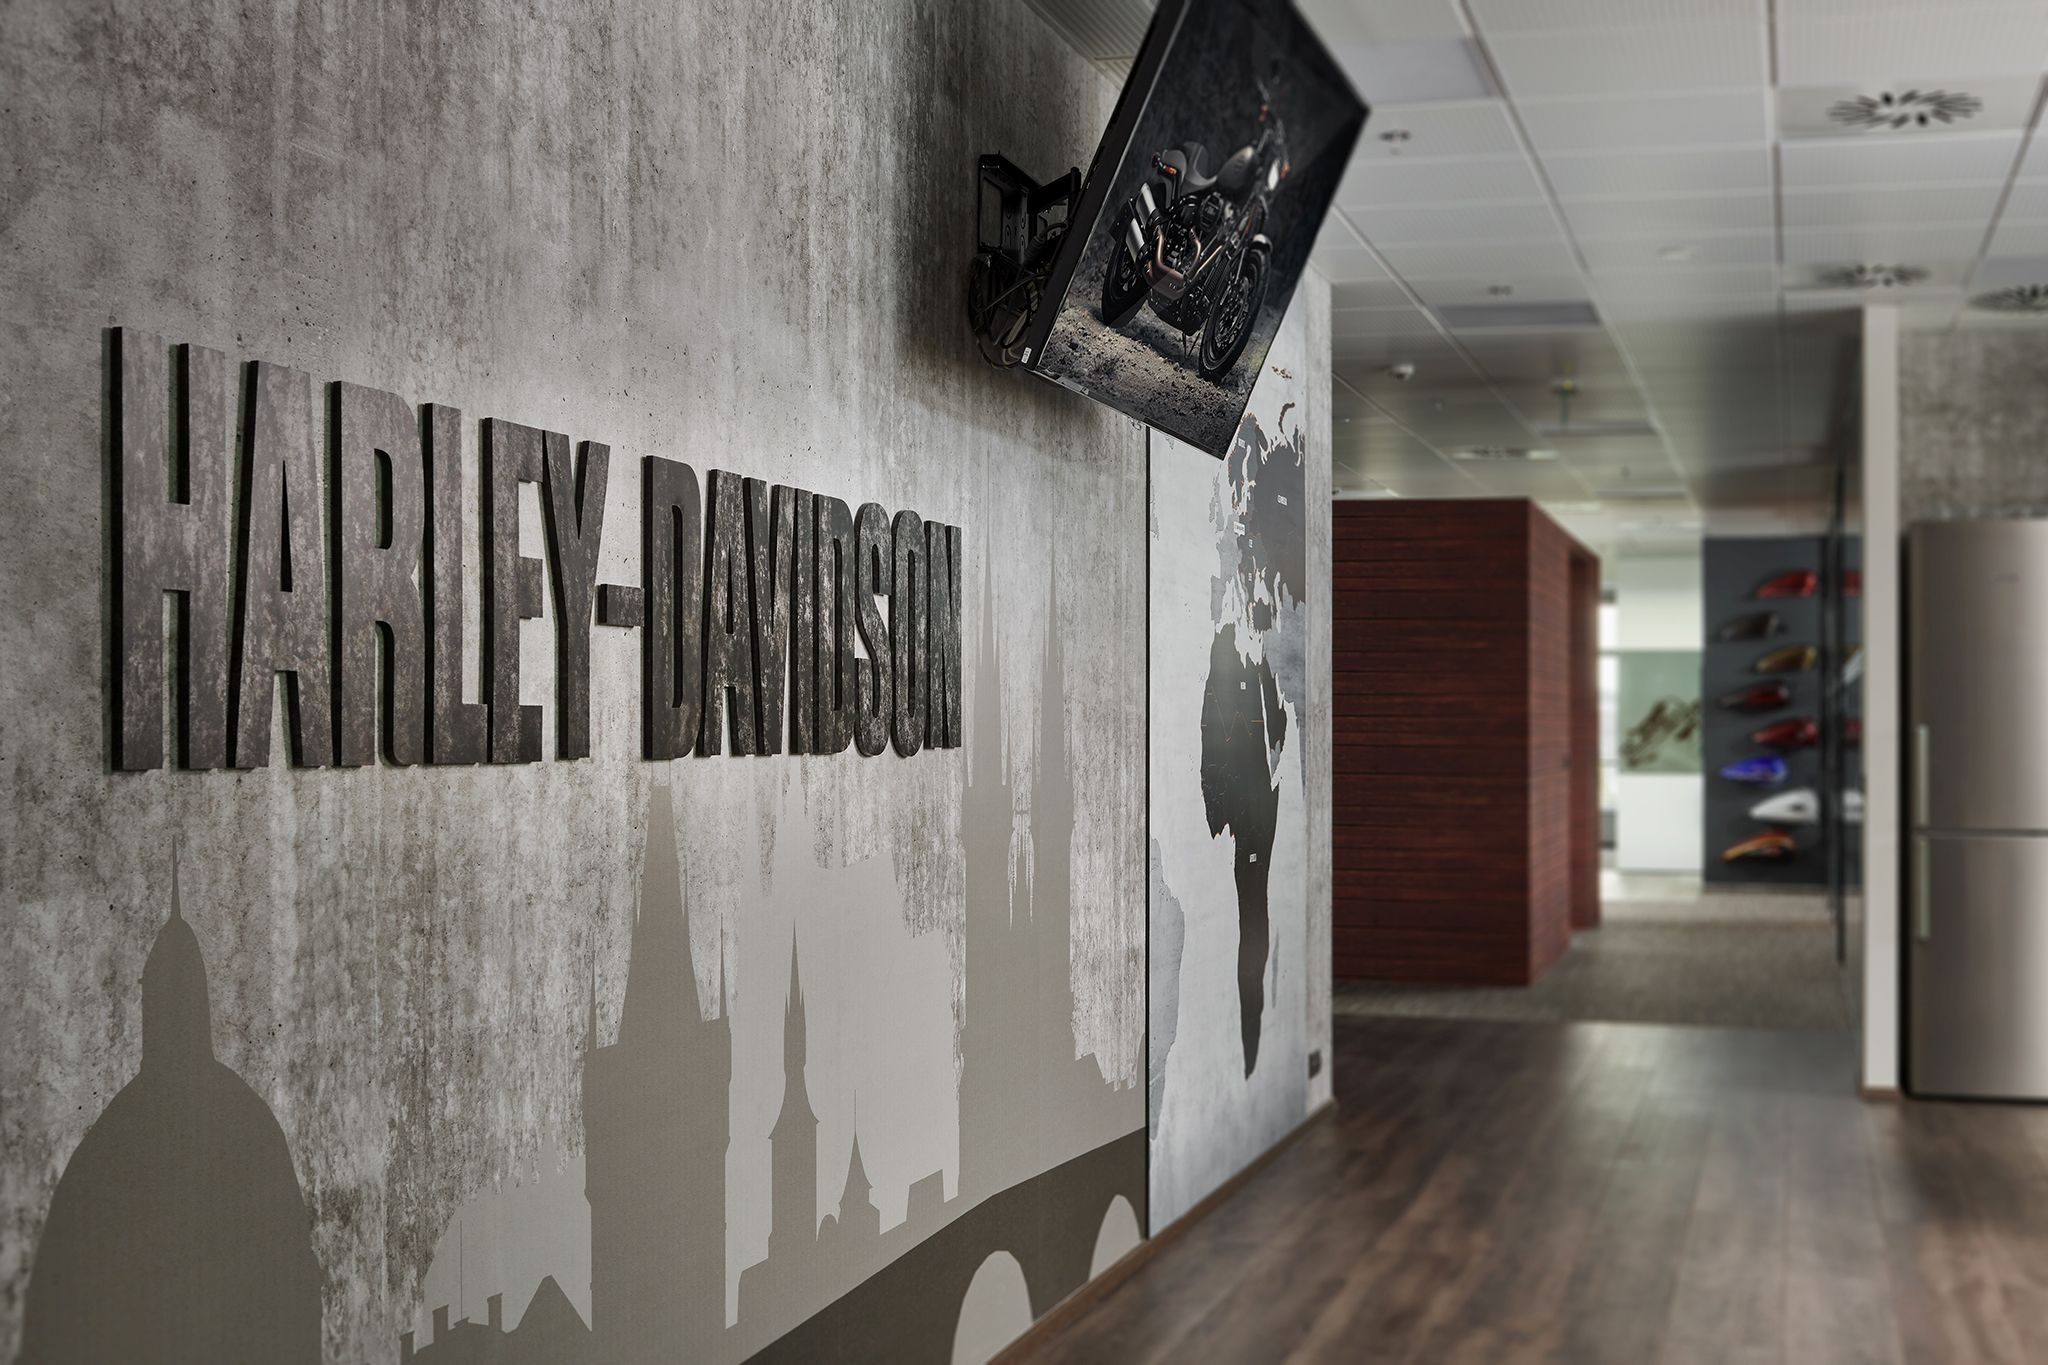 Harley Davidson office in Prague